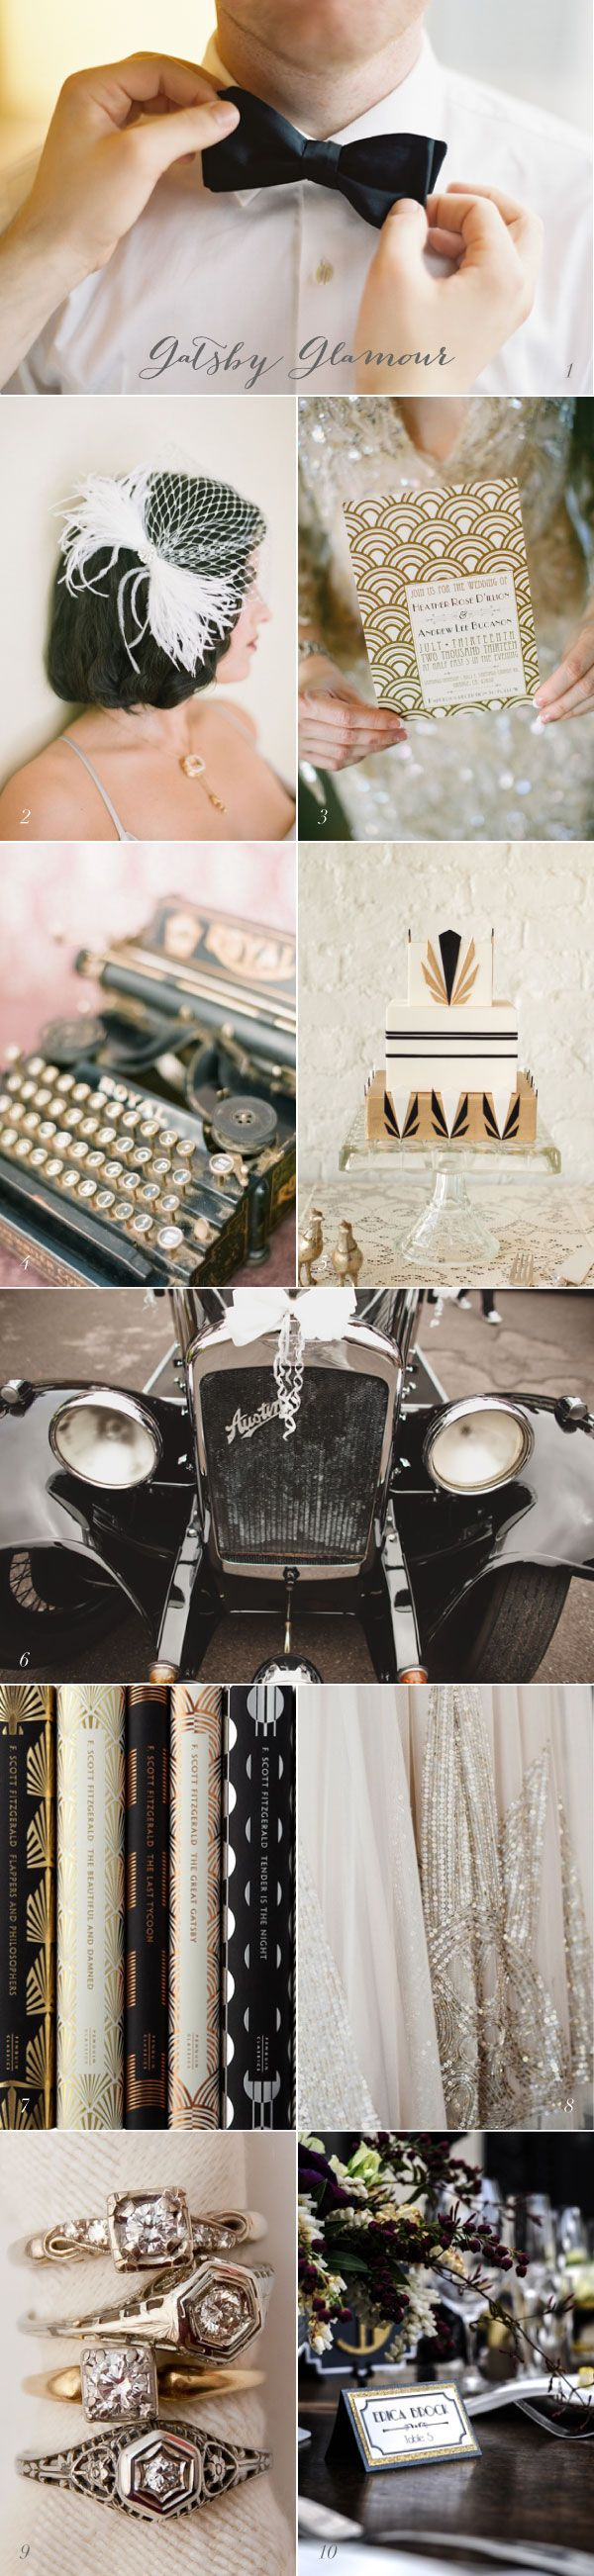 Current Crush Great Gatsby Wedding Inspiration If I don't have a 50s wedding, I shall have a Gatsby Era wedding